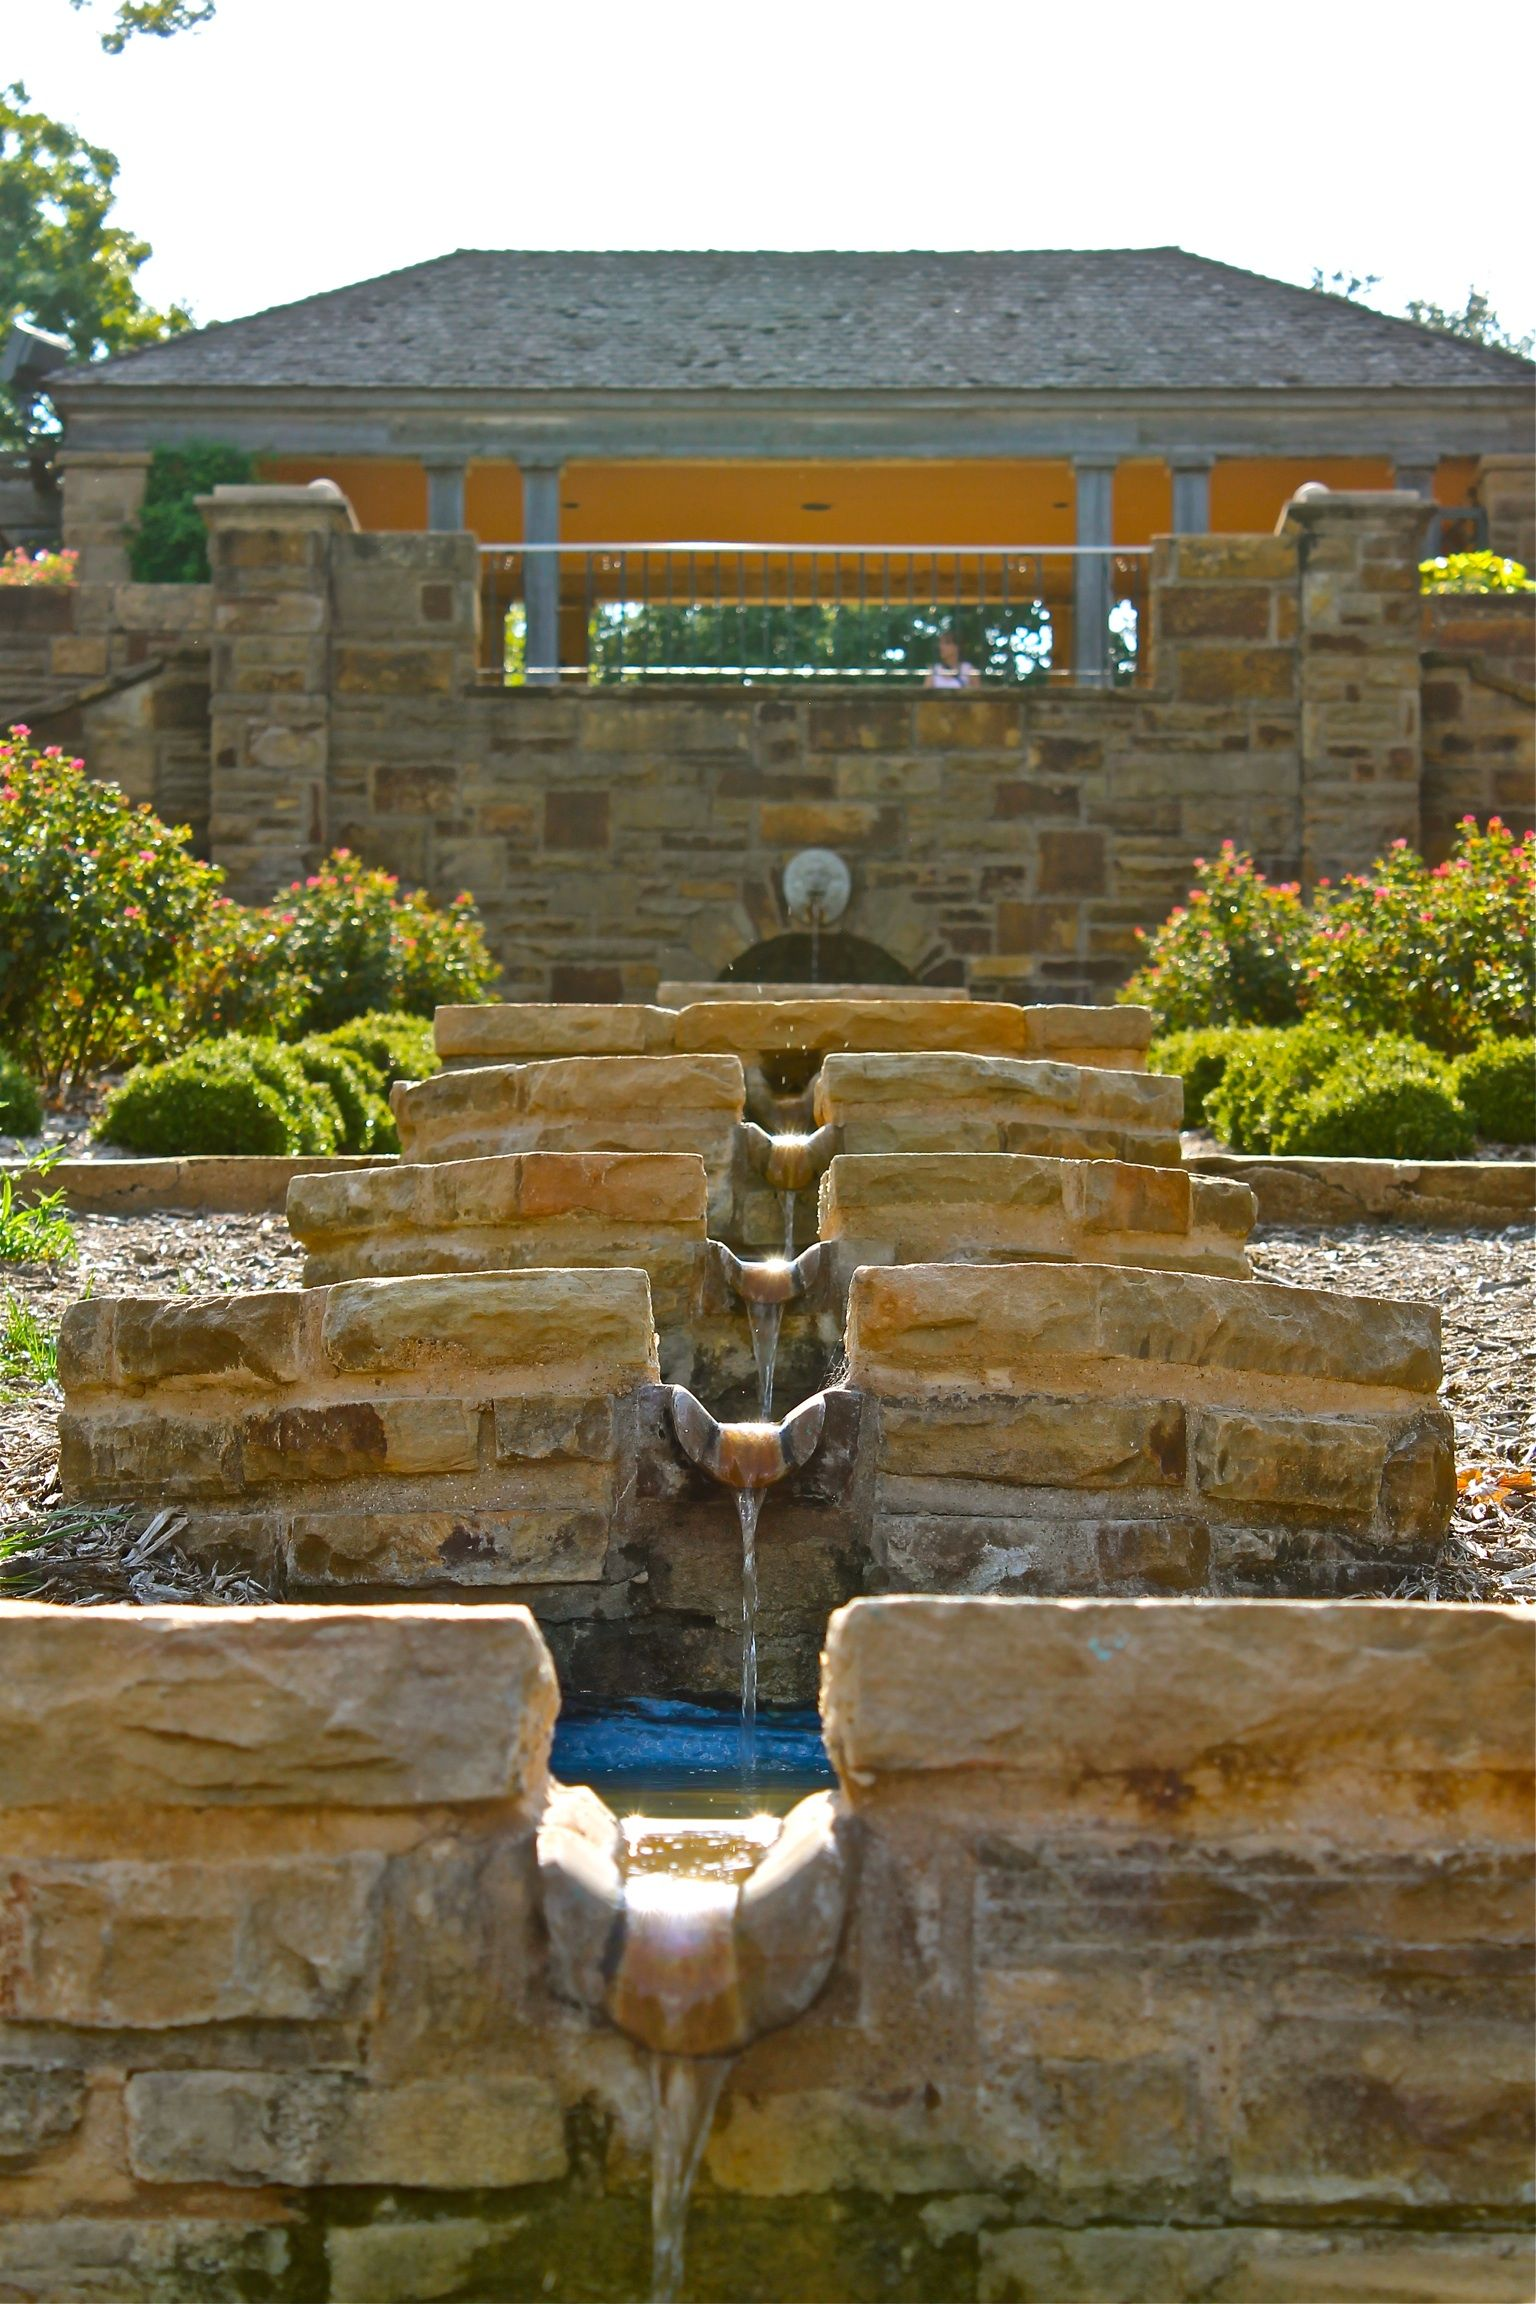 Fort Worth Botanical Gardens | my work | Pinterest | Fort worth ...